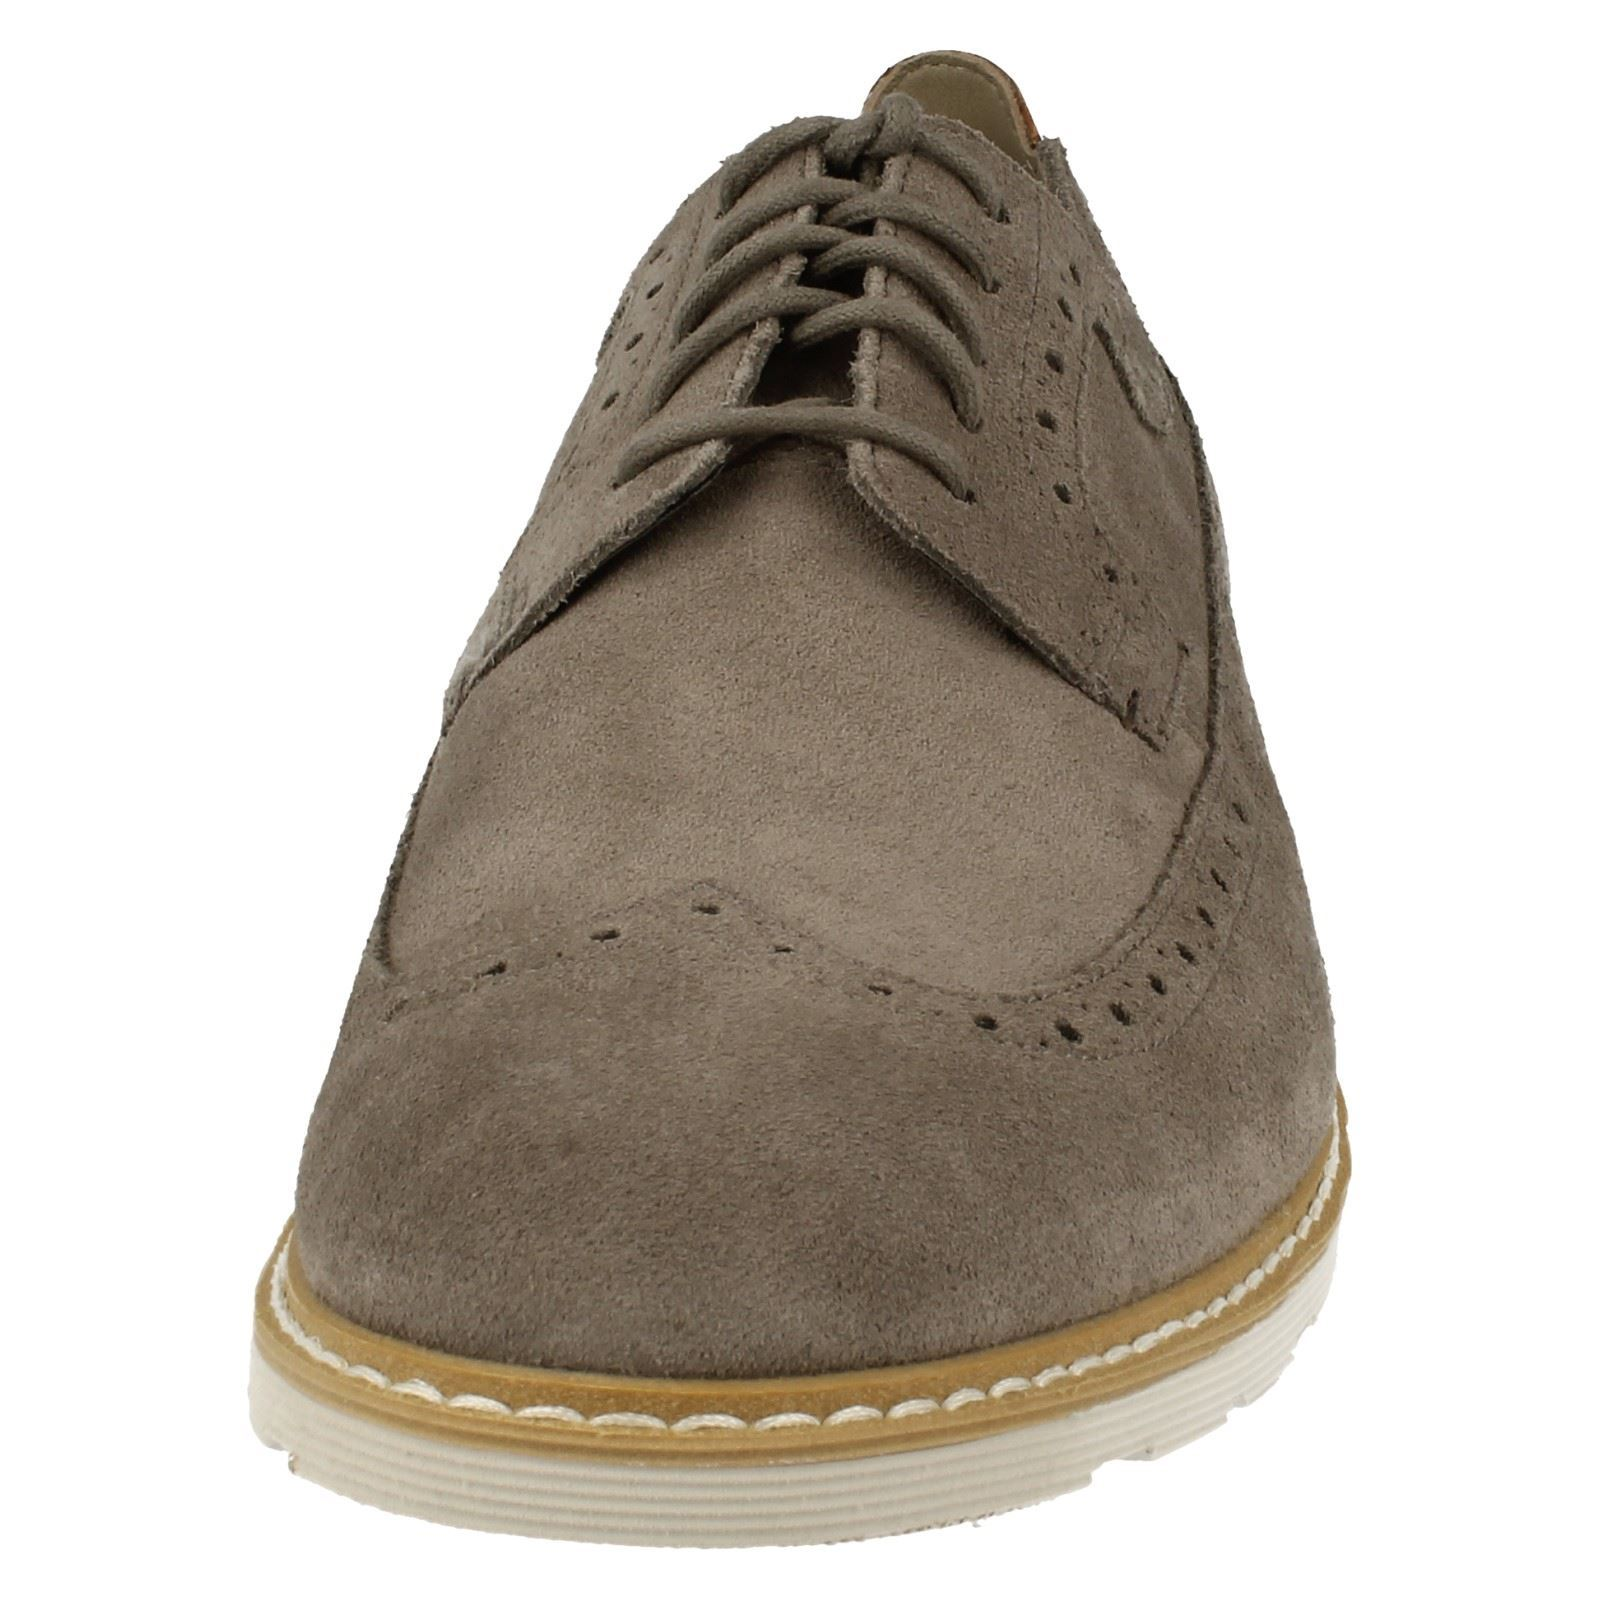 Men's Clarks Casual Lace Up Brogues Shoes The The The Styel - Gambeson Dress 4589c5